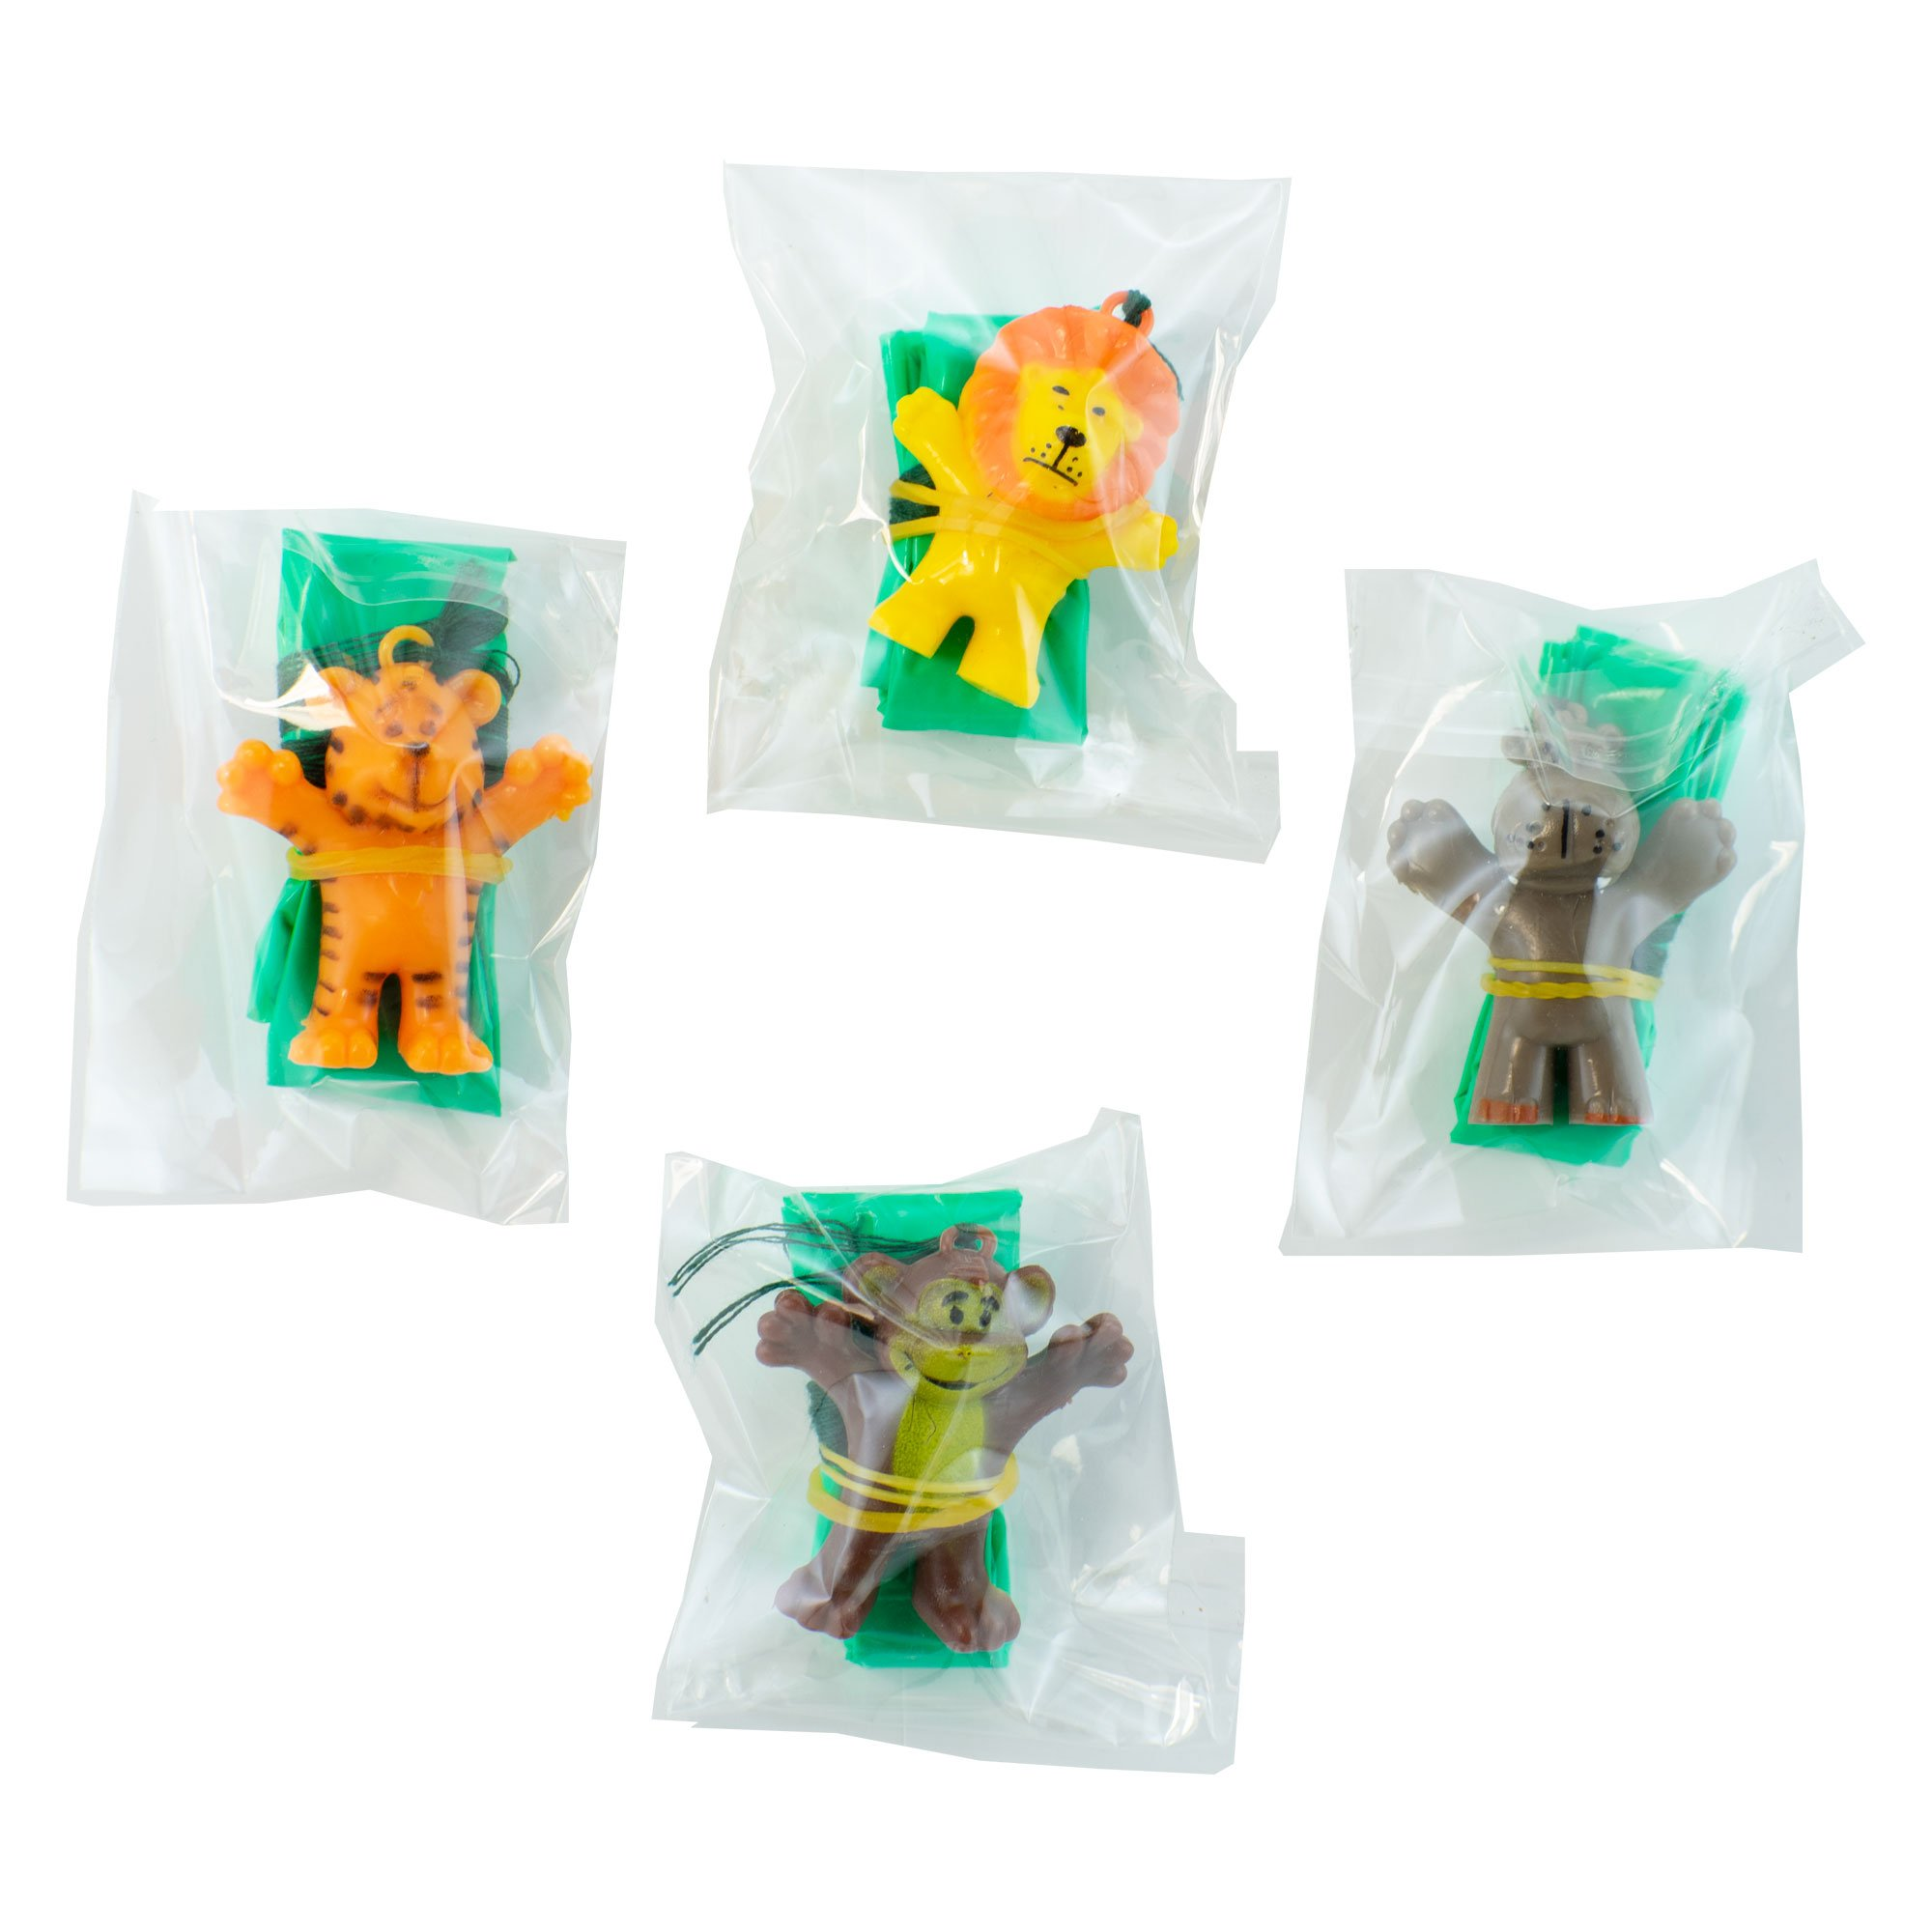 Giggletime Toy Co. Safari Animal Parachutist Assortment - (48) Pieces - for Kids, Boys and Girls, Party Favors, Pinata Stuffers, Children's Gift Bags, Carnival Prizes by Giggletime Toy Co. (Image #4)